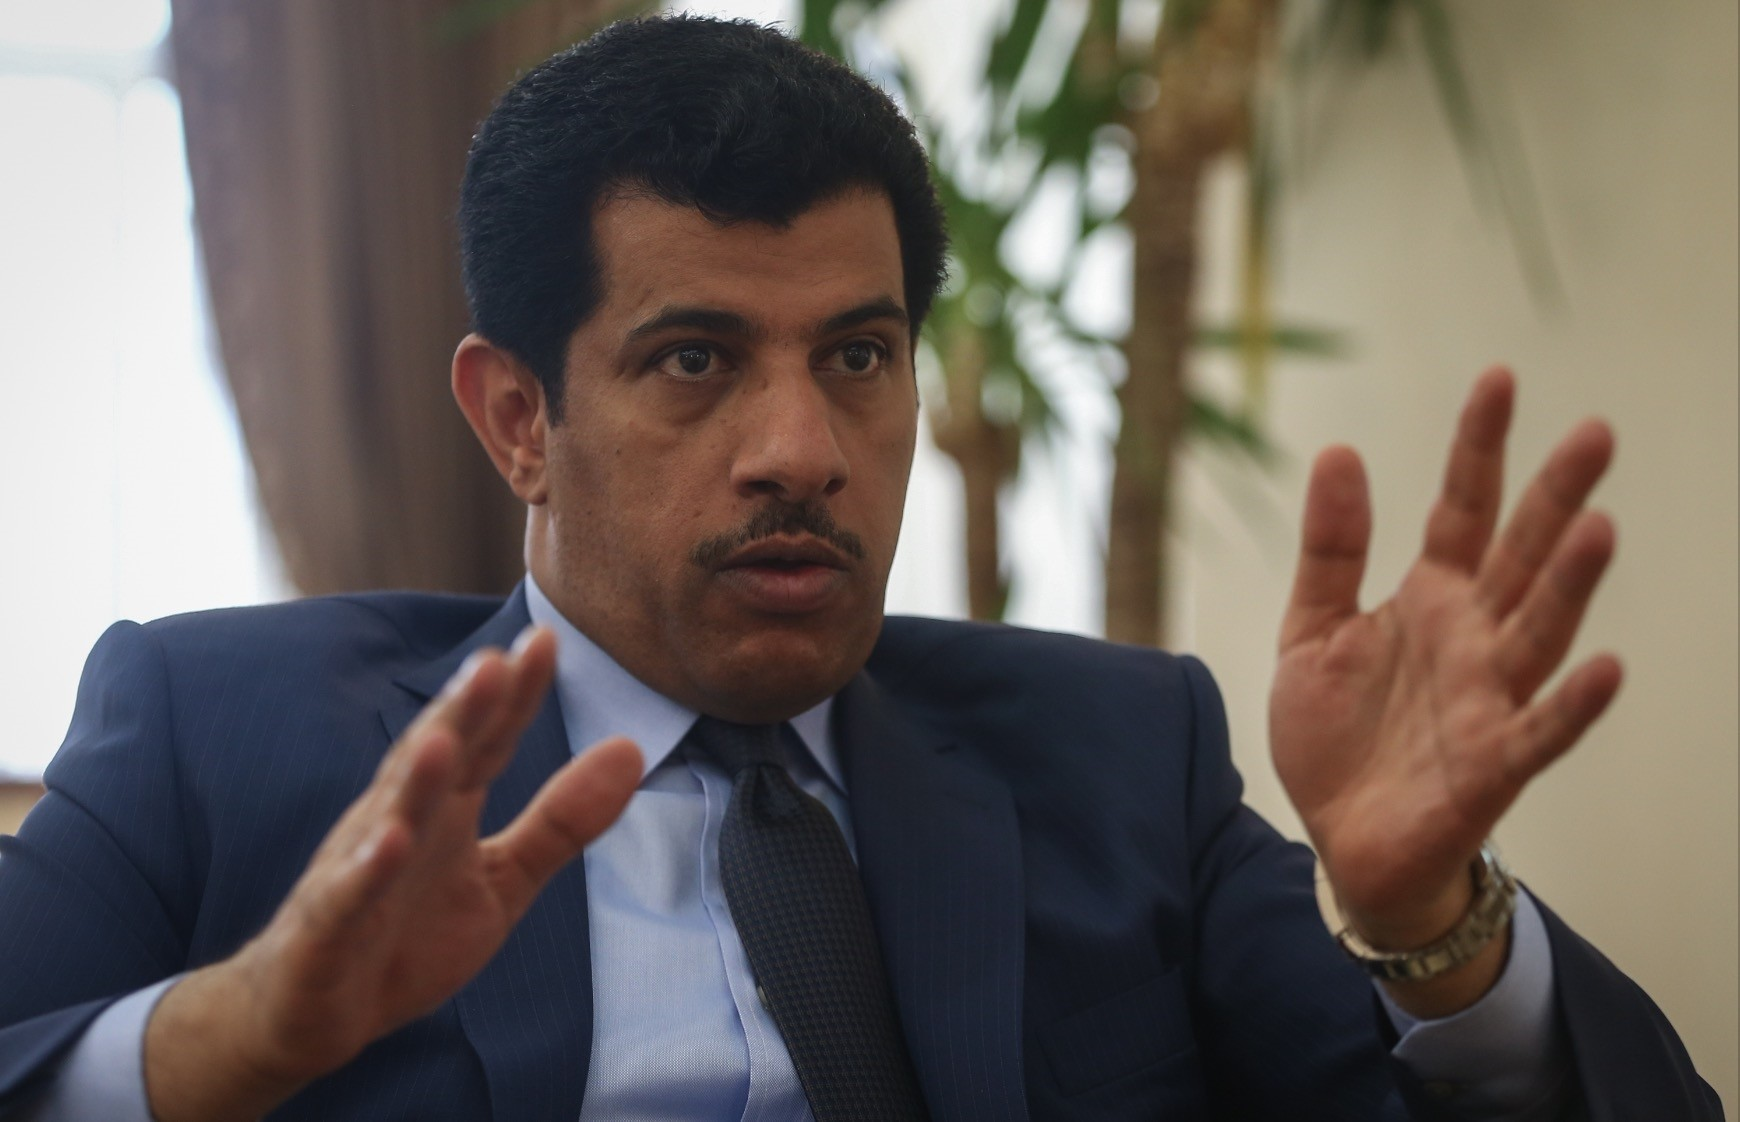 Commenting on the challenges Turkey and Qatar have faced in recent years, Salem Bin Mubarak Al-Shafi said that both stood defiantly in the face of these difficulties.